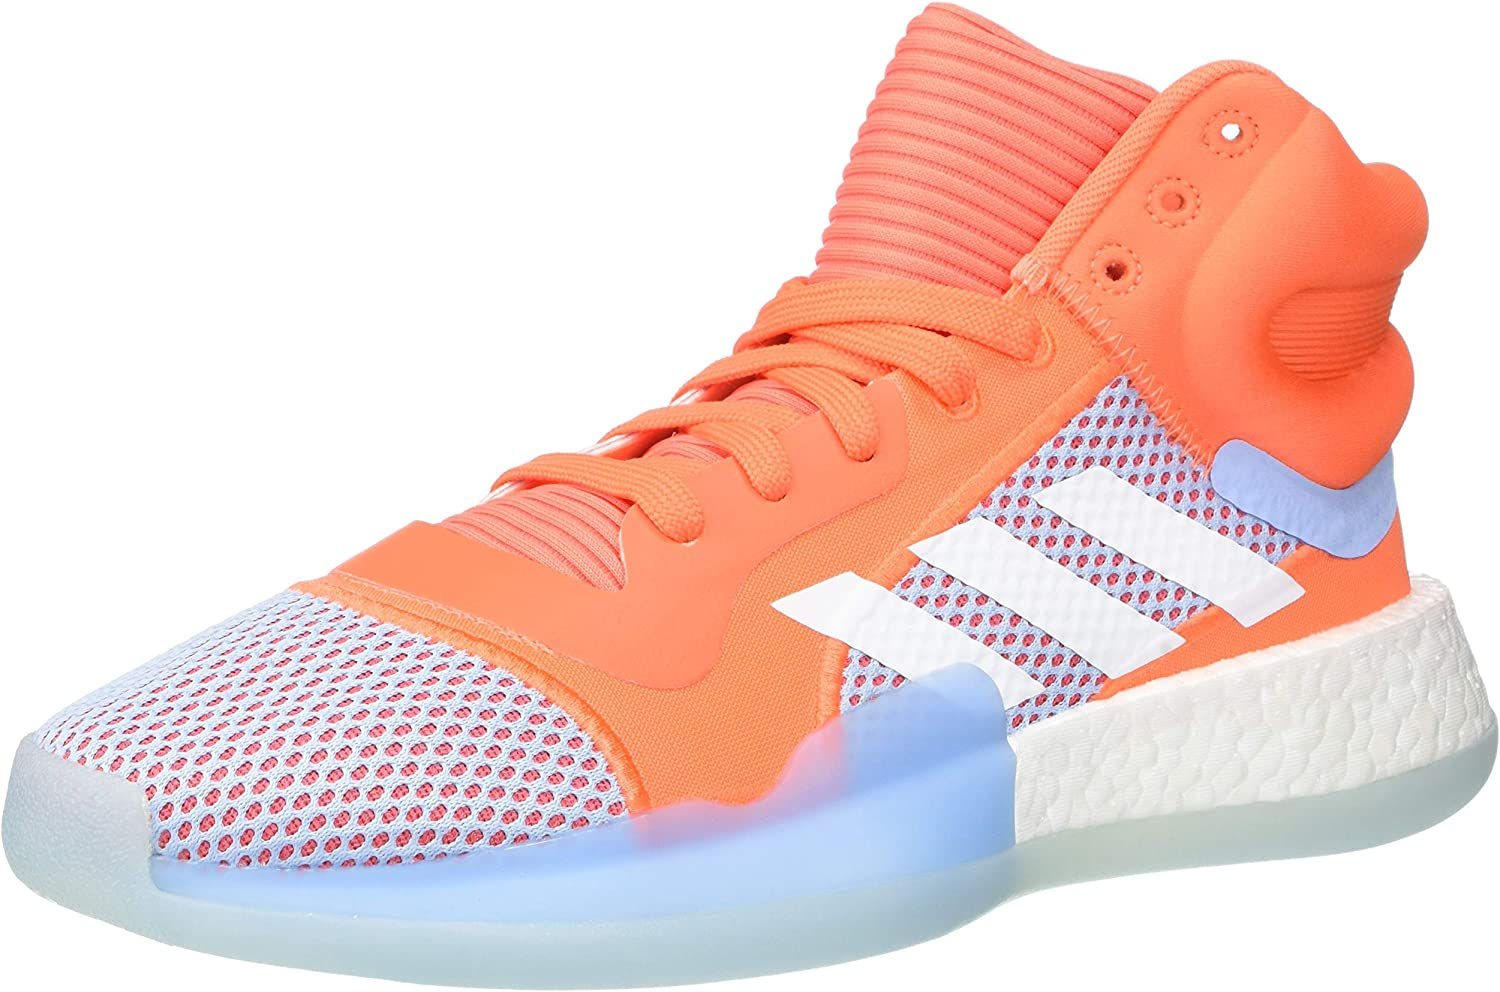 adidas Men's Marquee Boost New Shipping Free Shipping Low Shoe Basketball Max 84% OFF